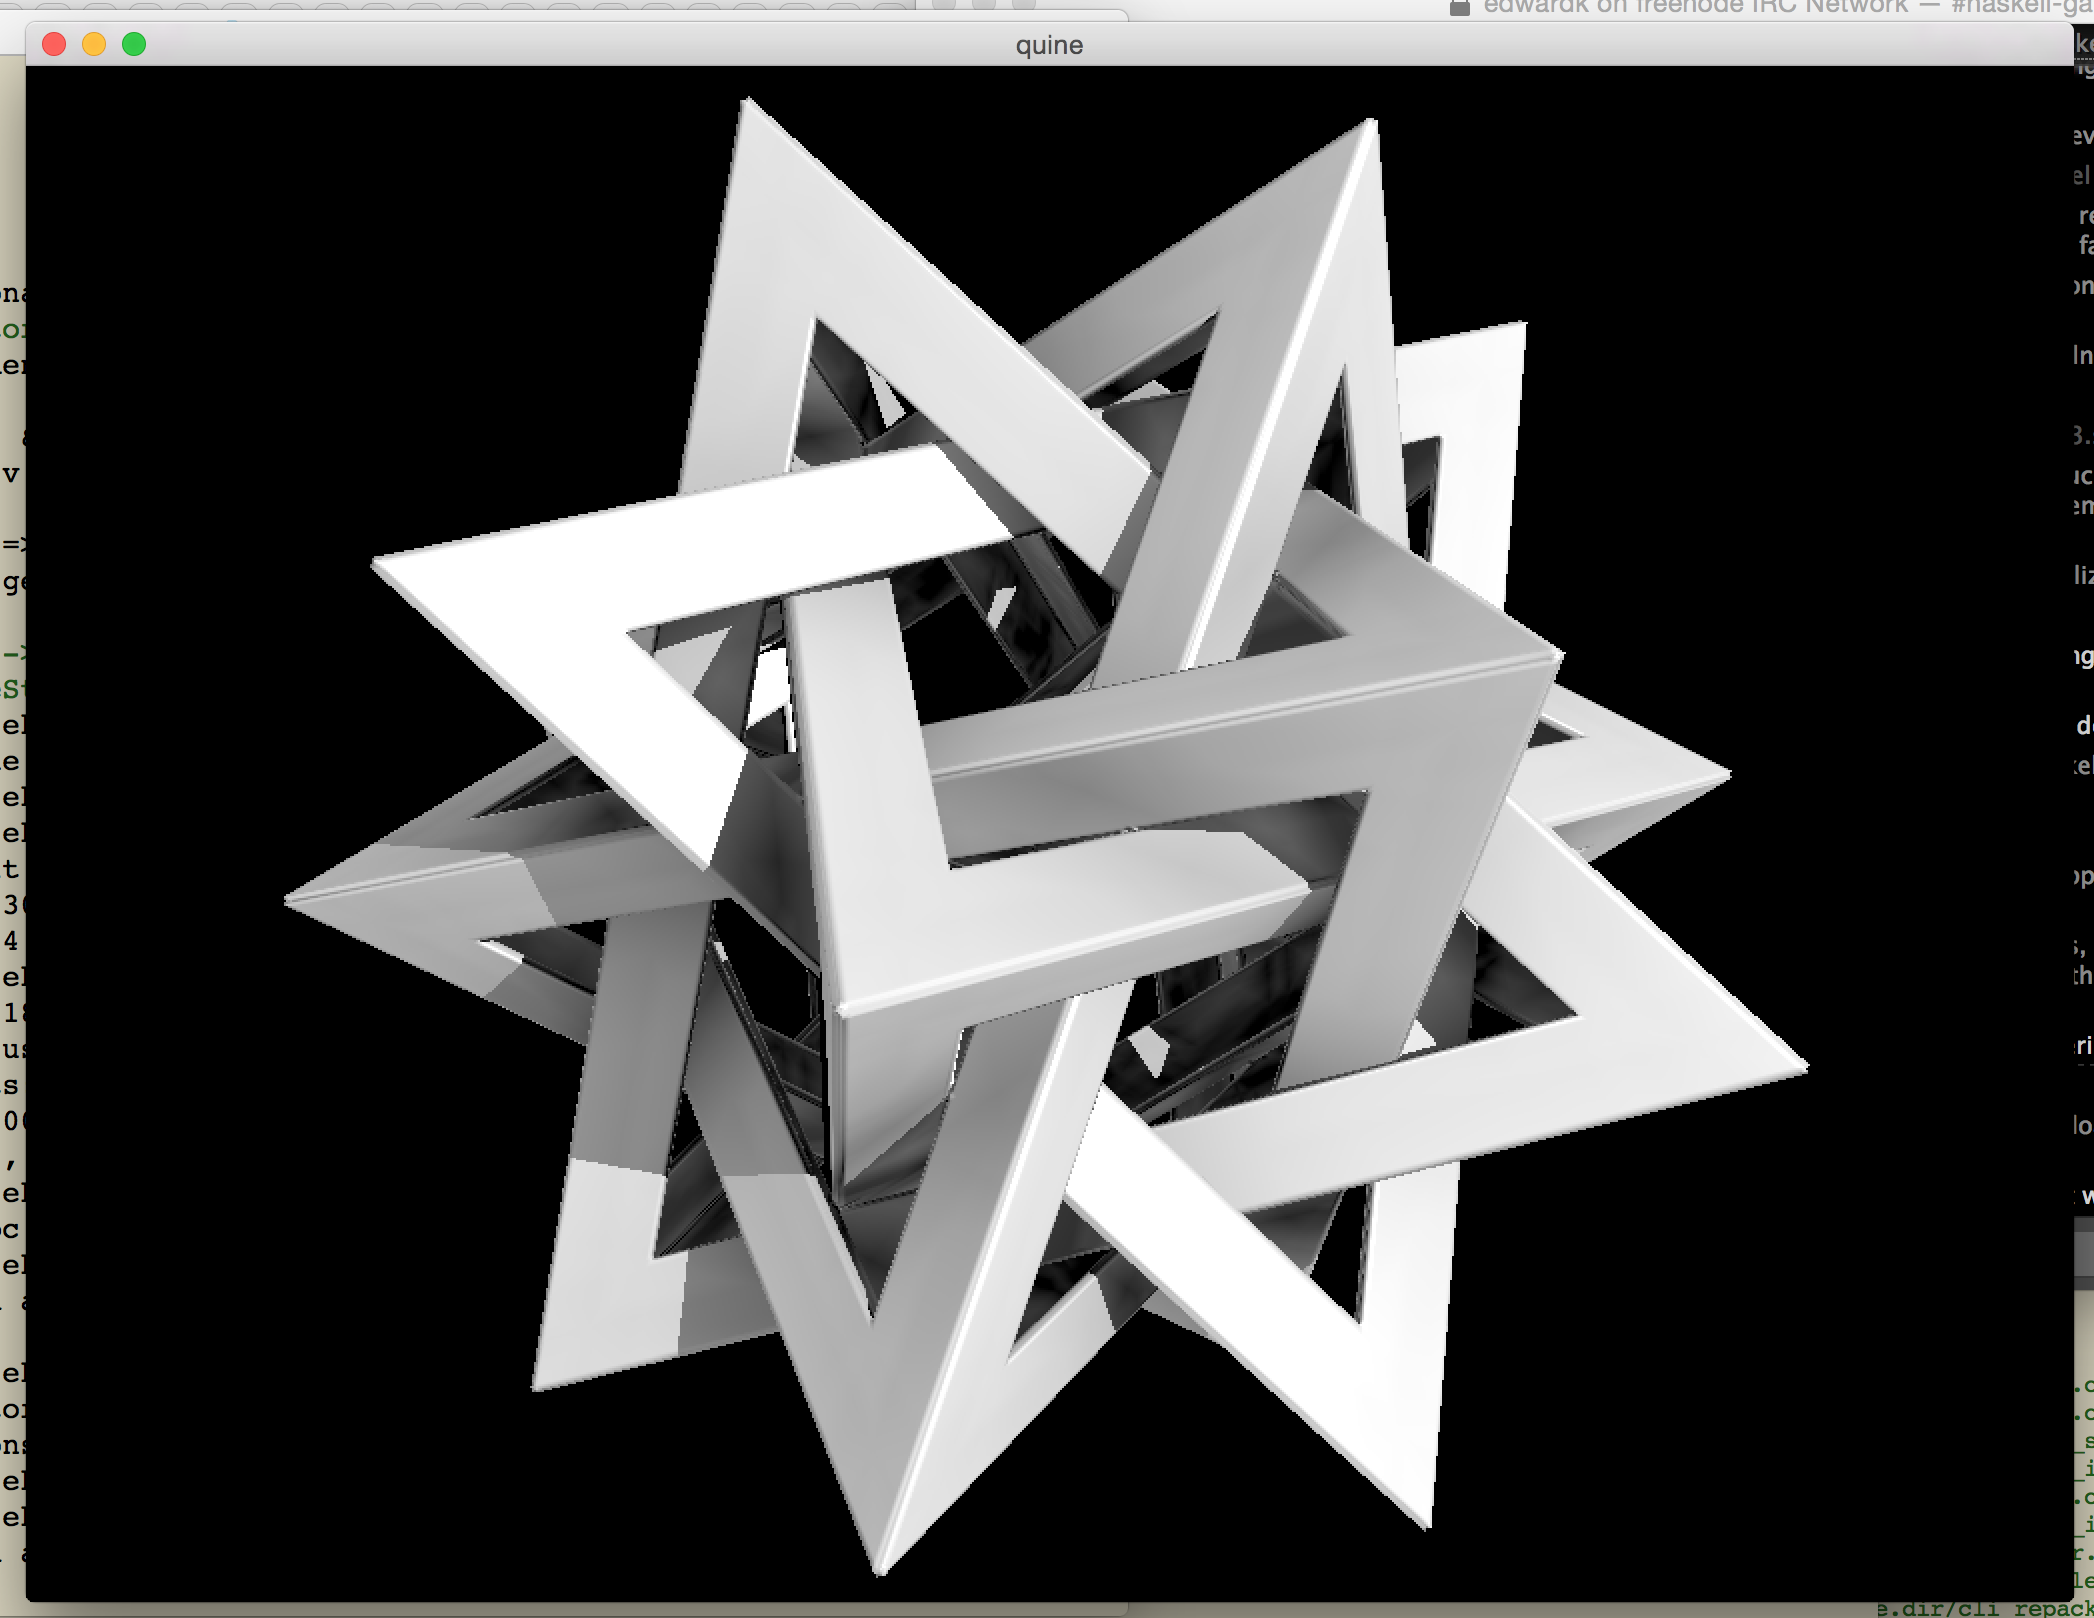 screenshot of a dodecahedron